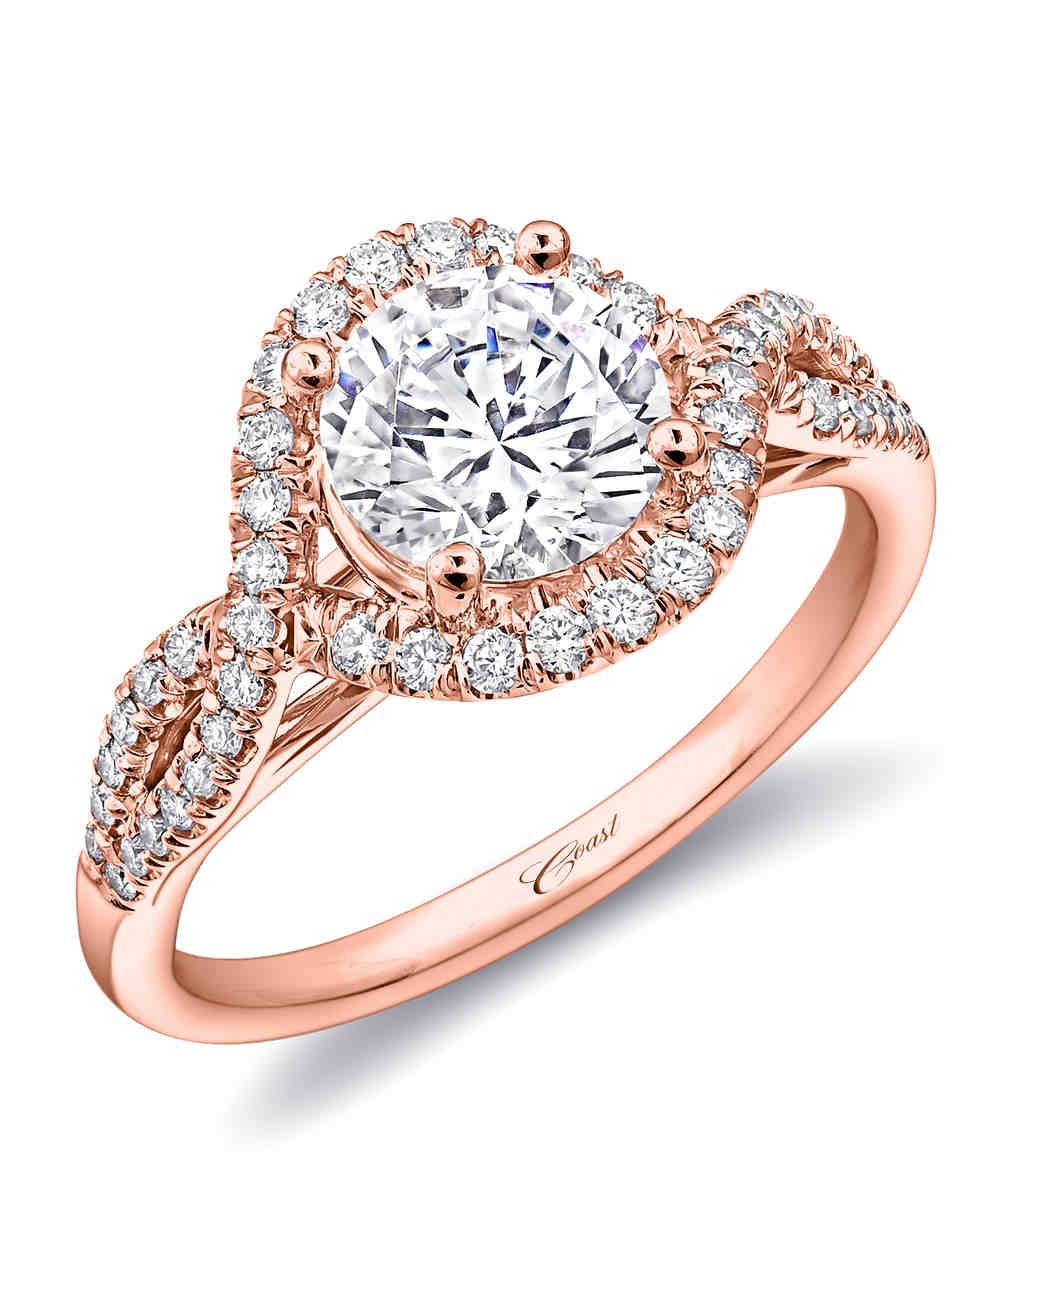 41 rose gold engagement rings we love martha stewart weddings. Black Bedroom Furniture Sets. Home Design Ideas